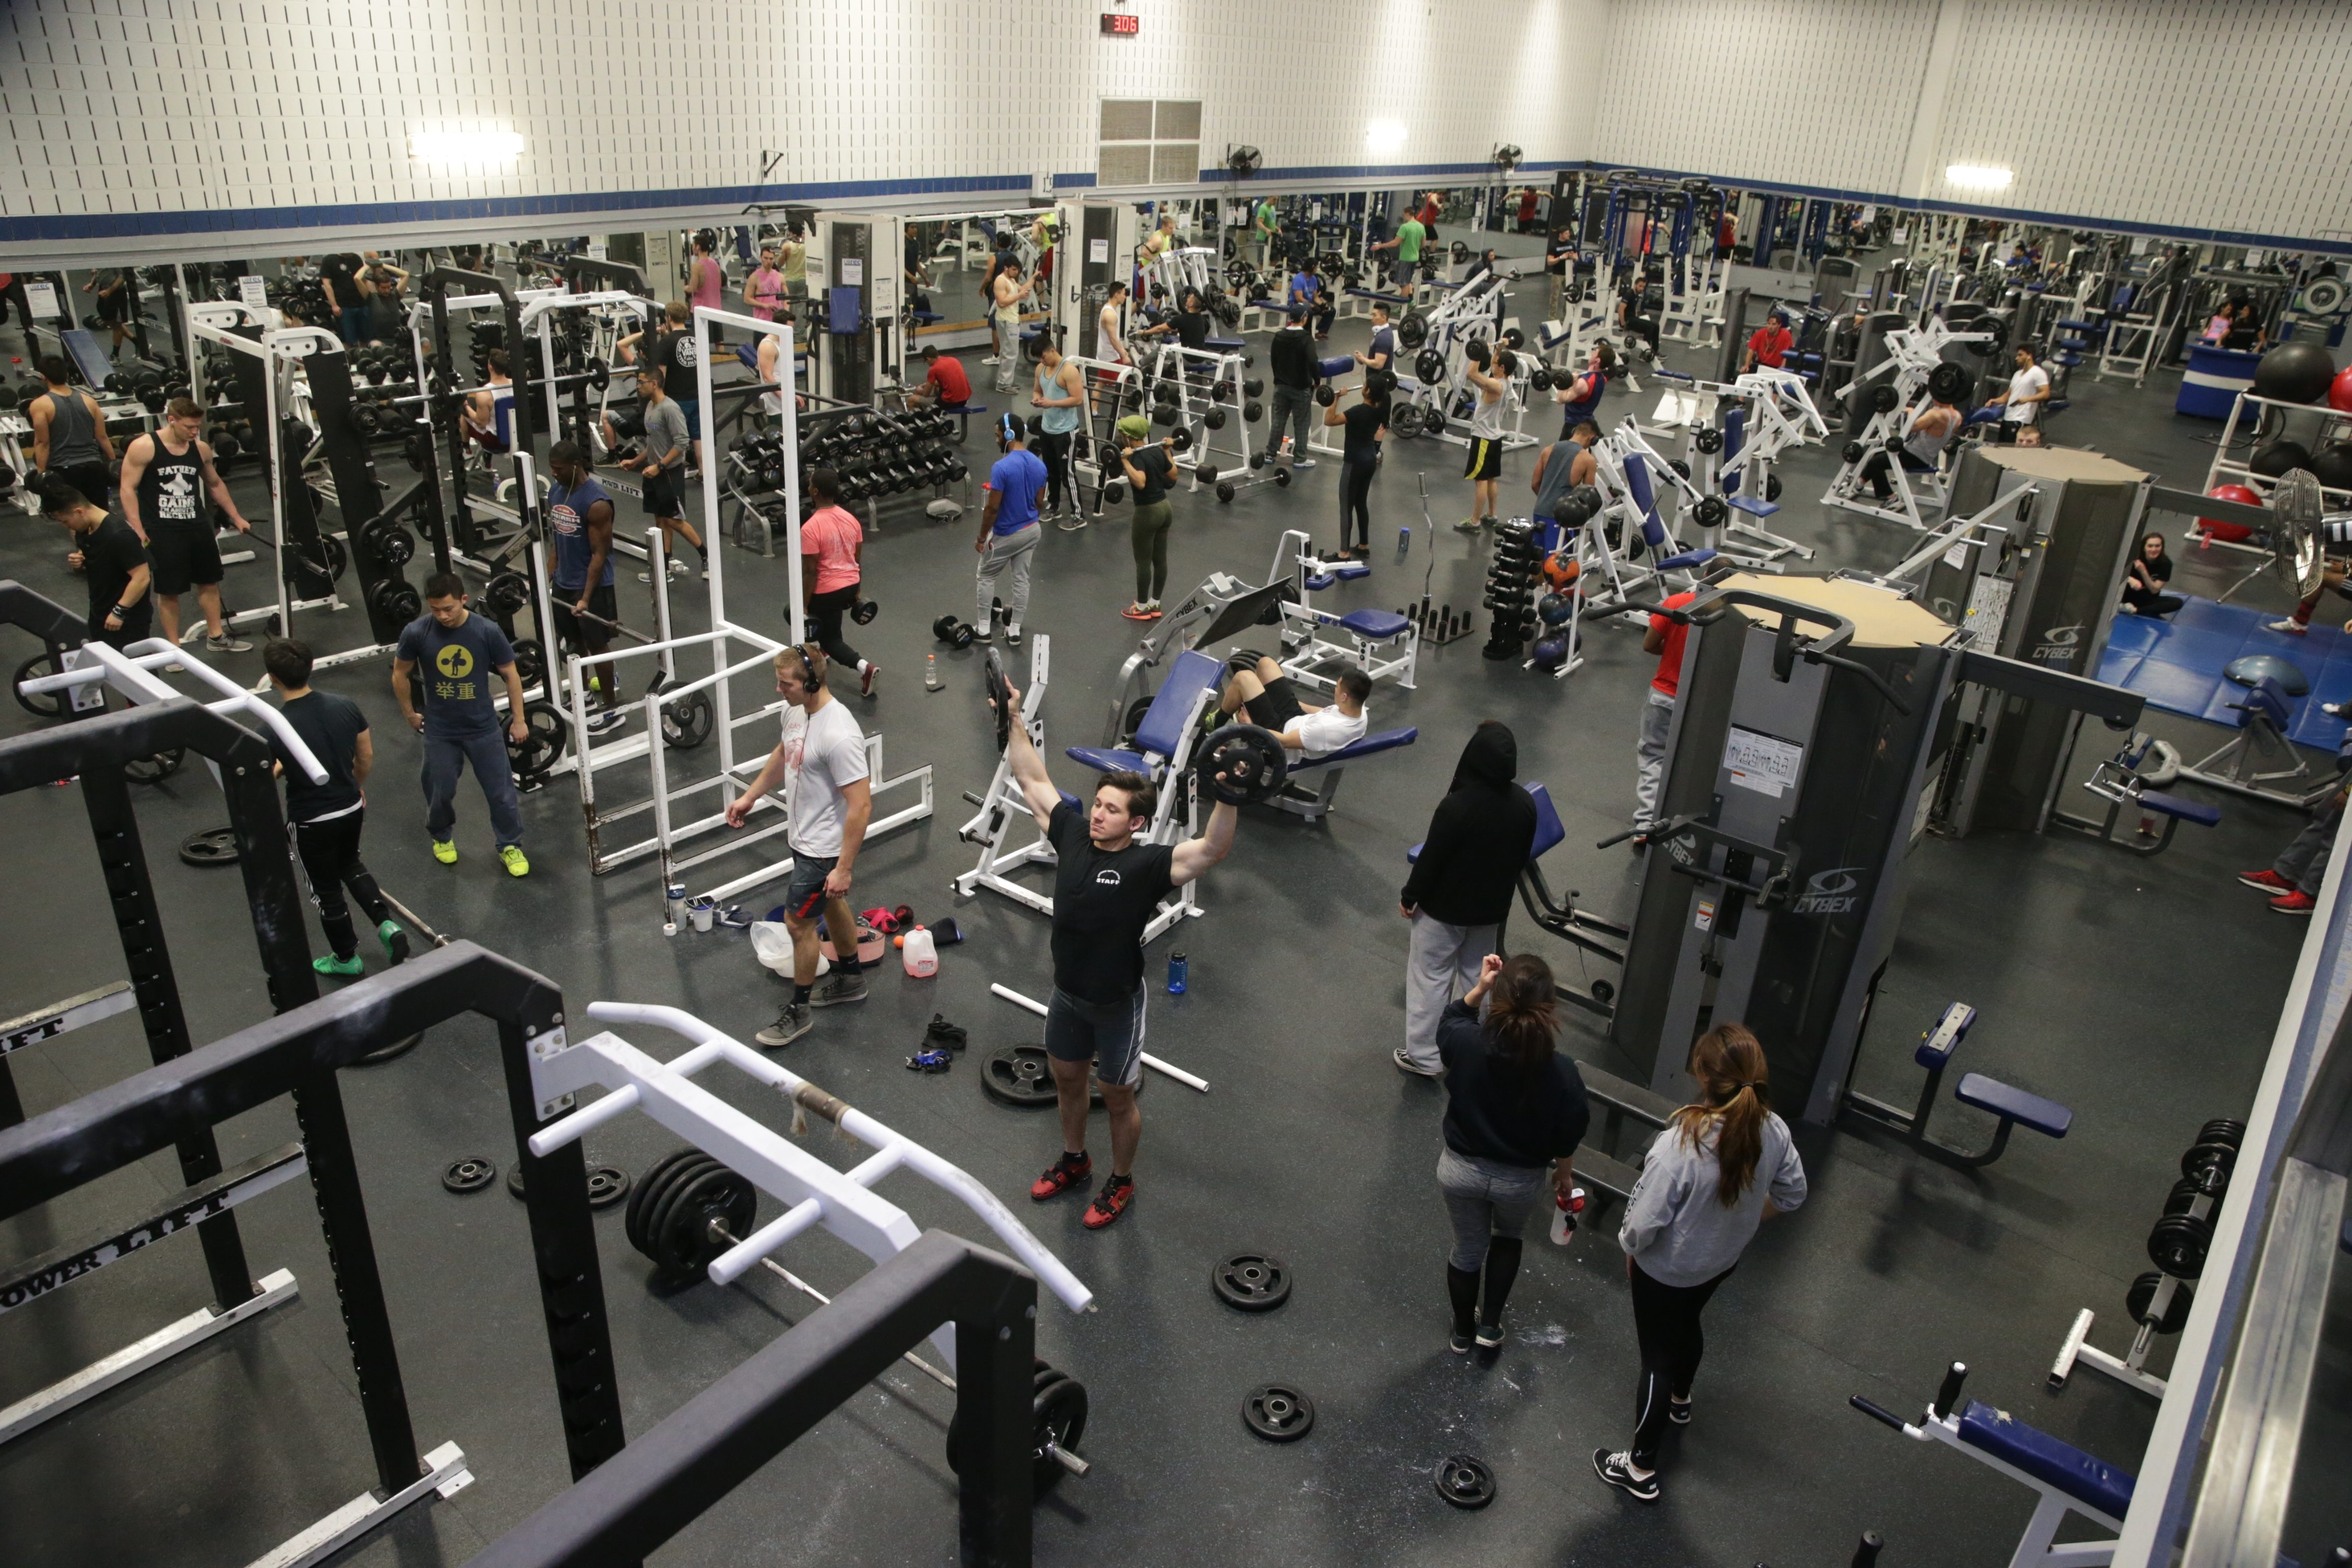 Dissatisfied with athletic facilities ub students propose higher